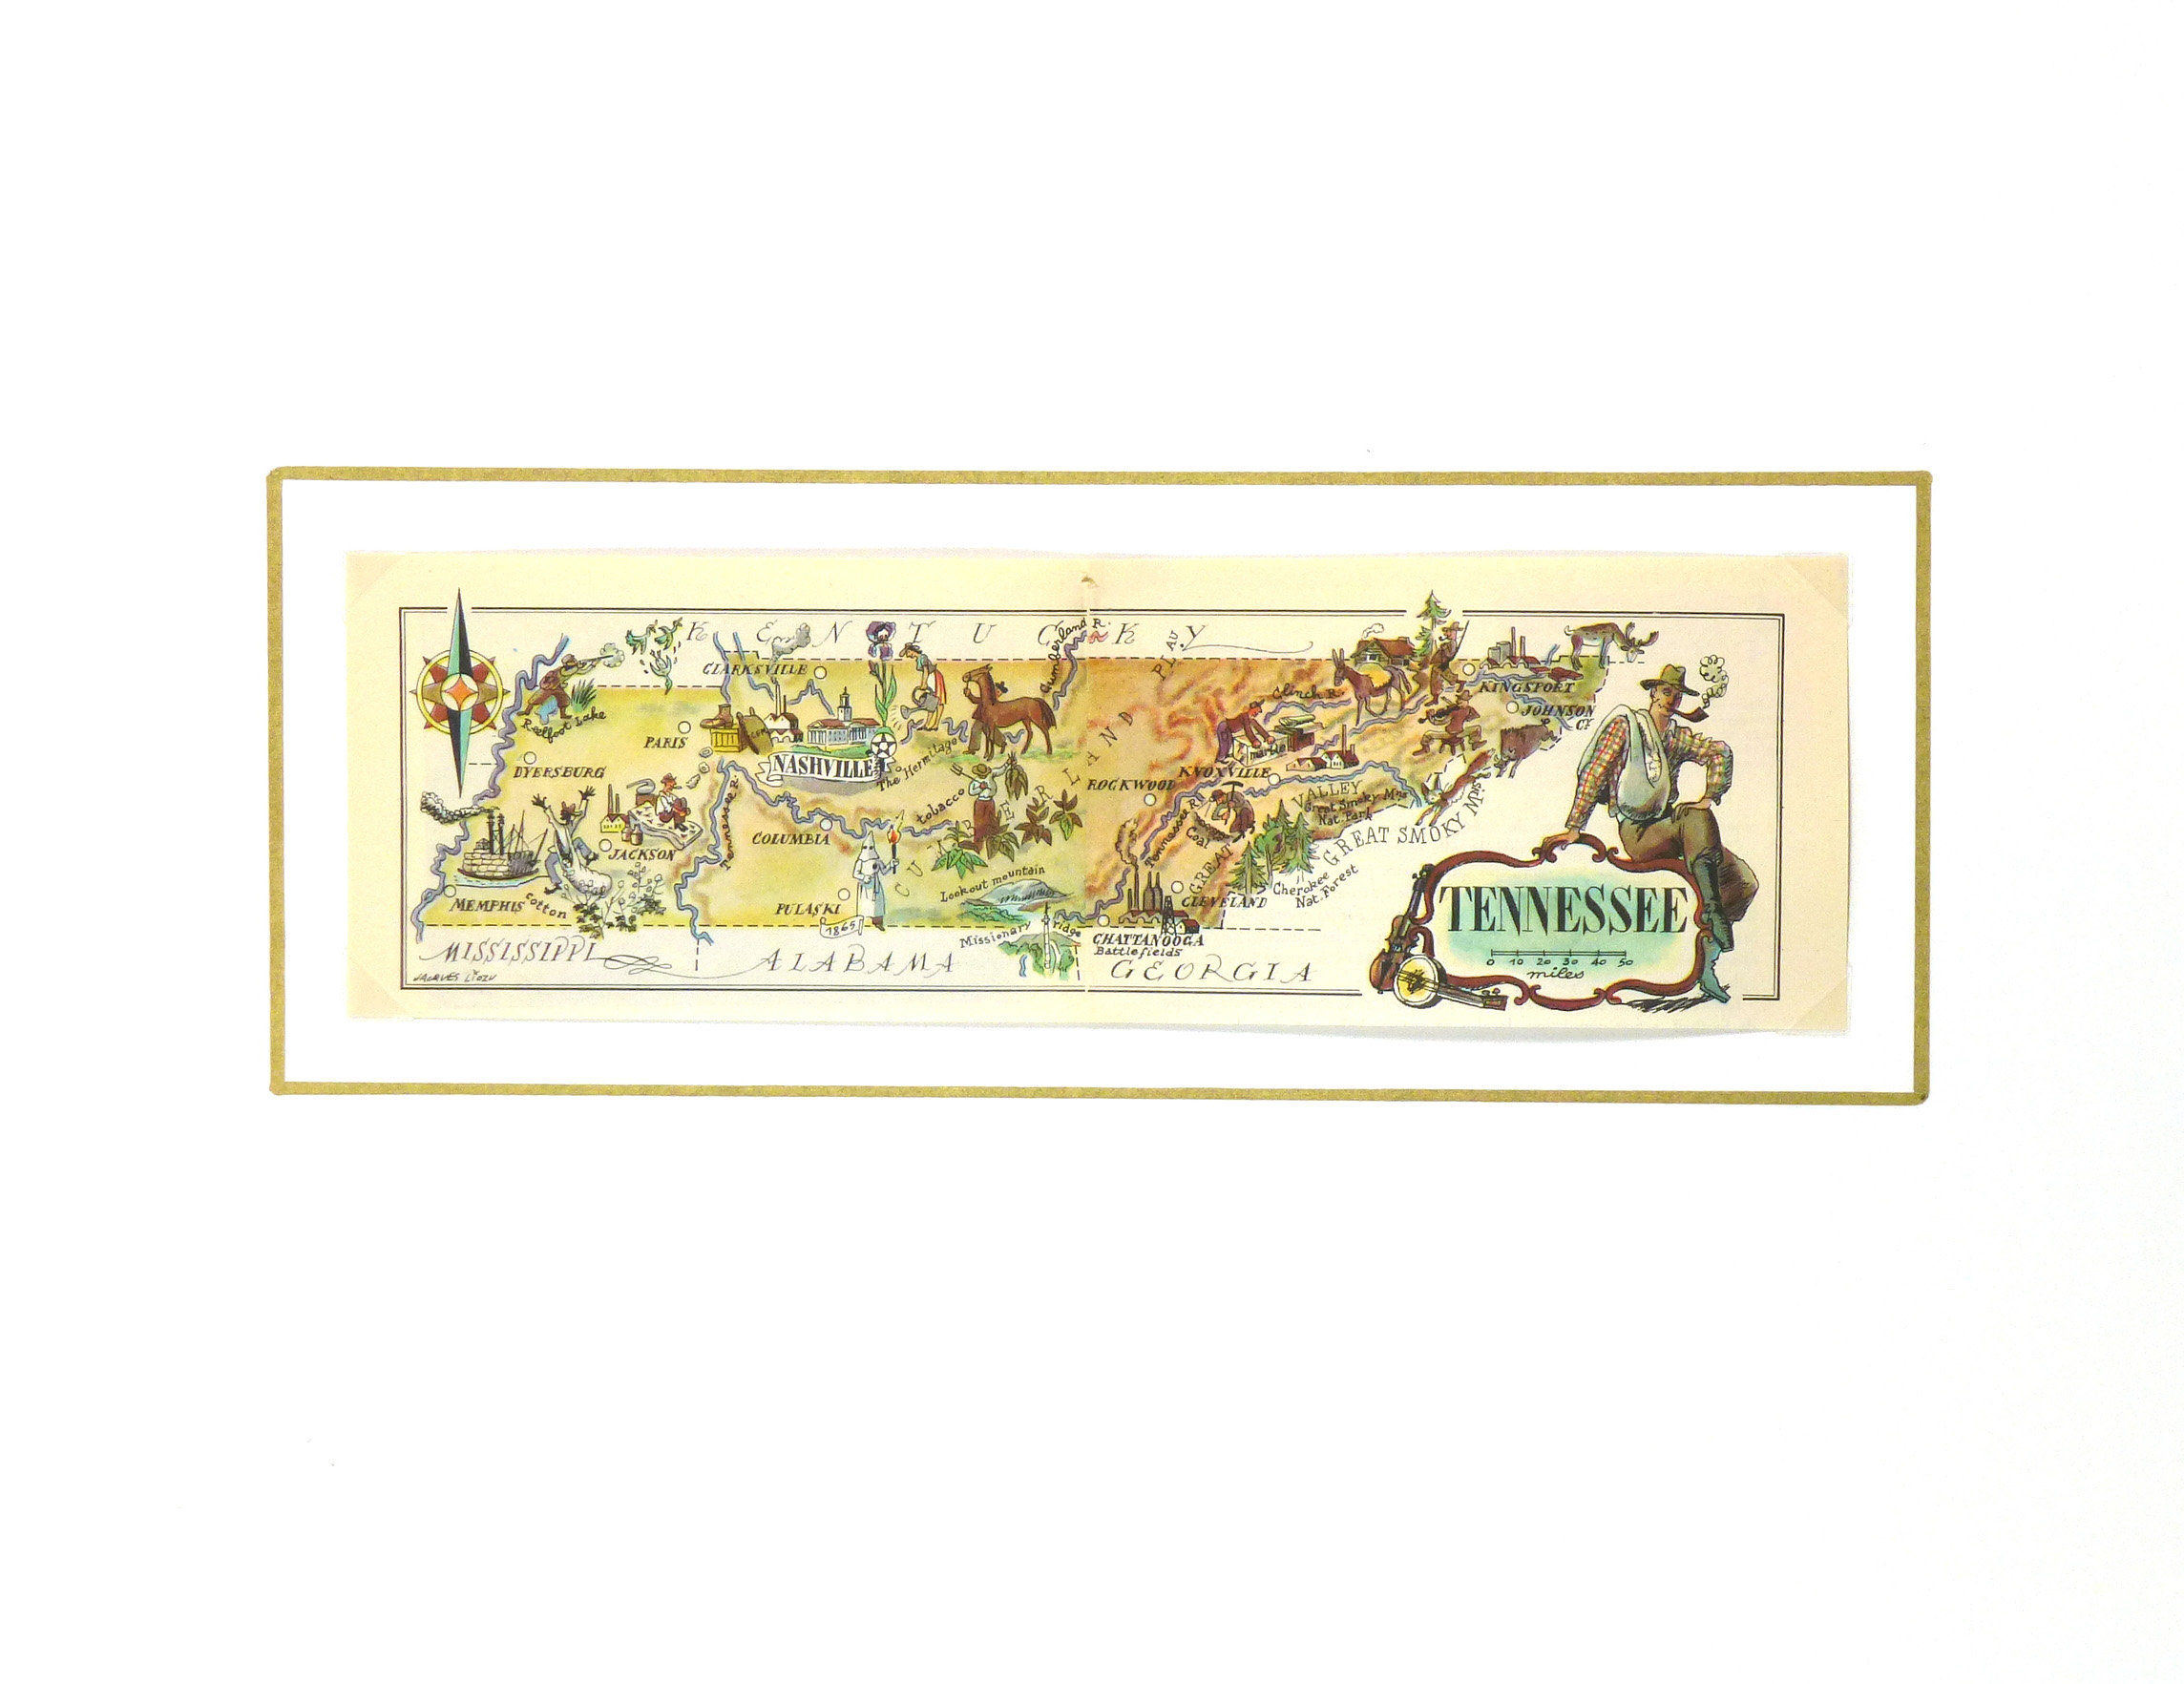 Tennessee Pictorial Map, 1946-matted-6268K